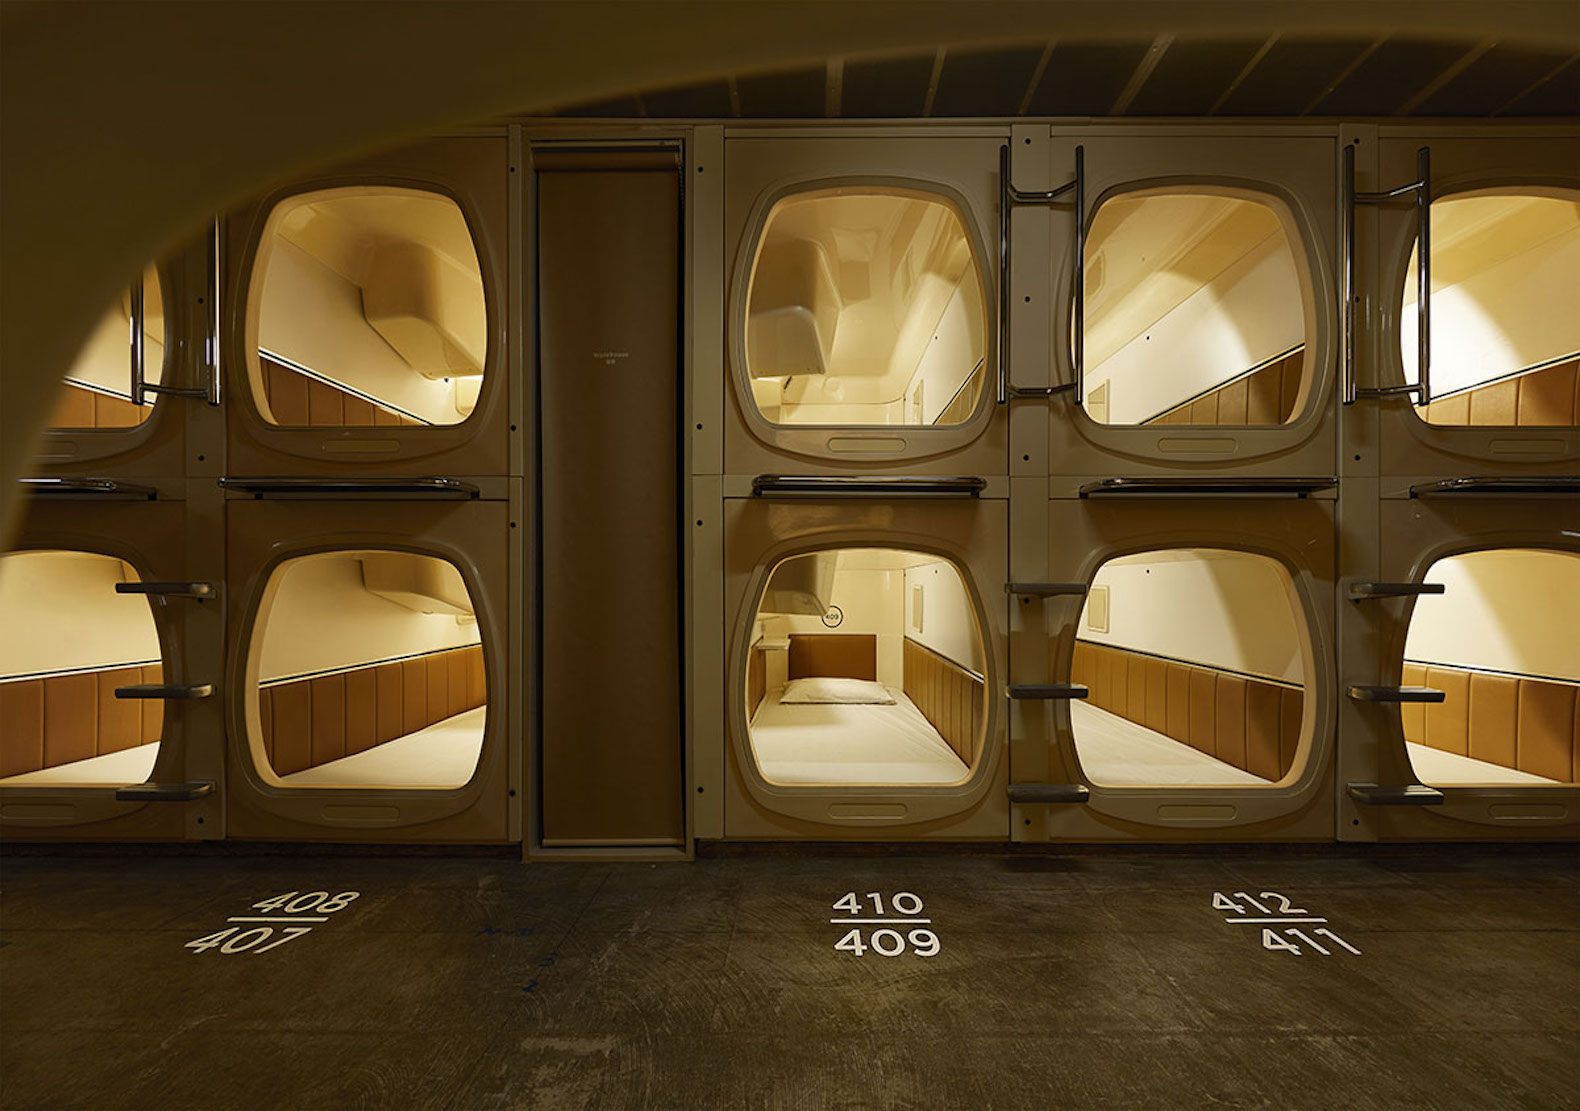 Tokyo capsule hotel gets a Finnish-inspired refresh and sauna